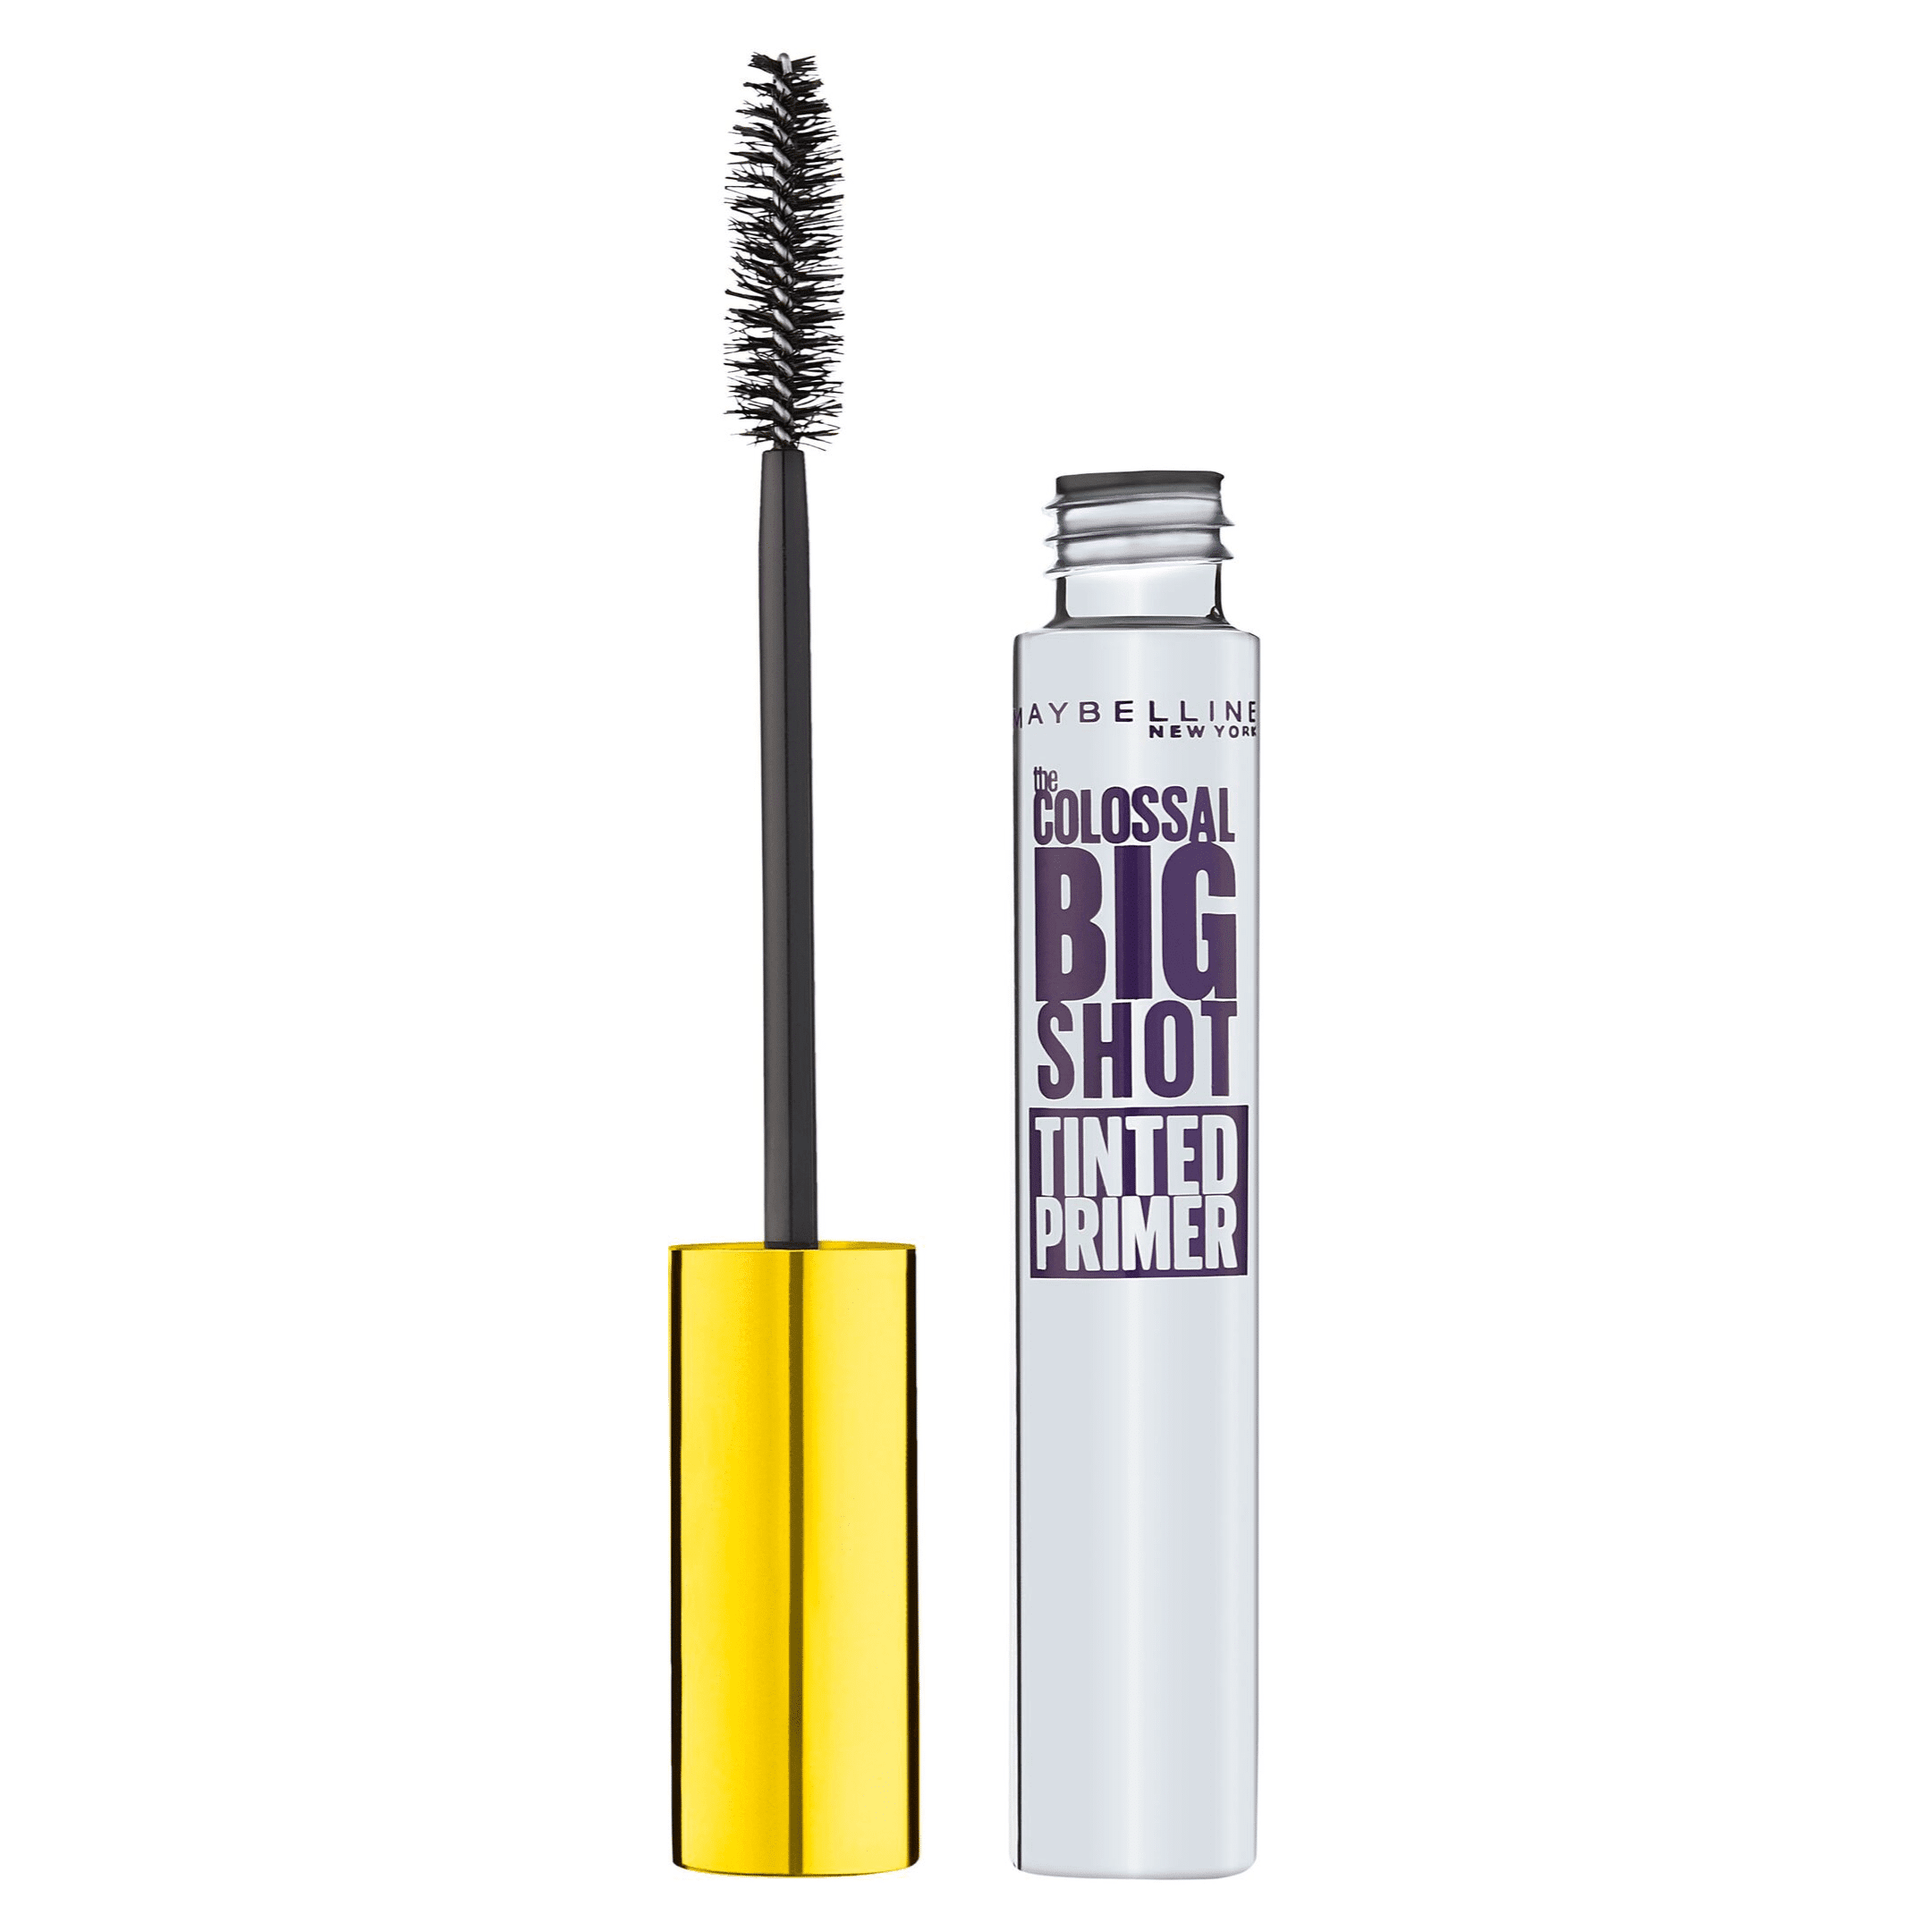 Maybelline_Base_de_Mascara_Teintee_The_Colossal_Big_Shot-1